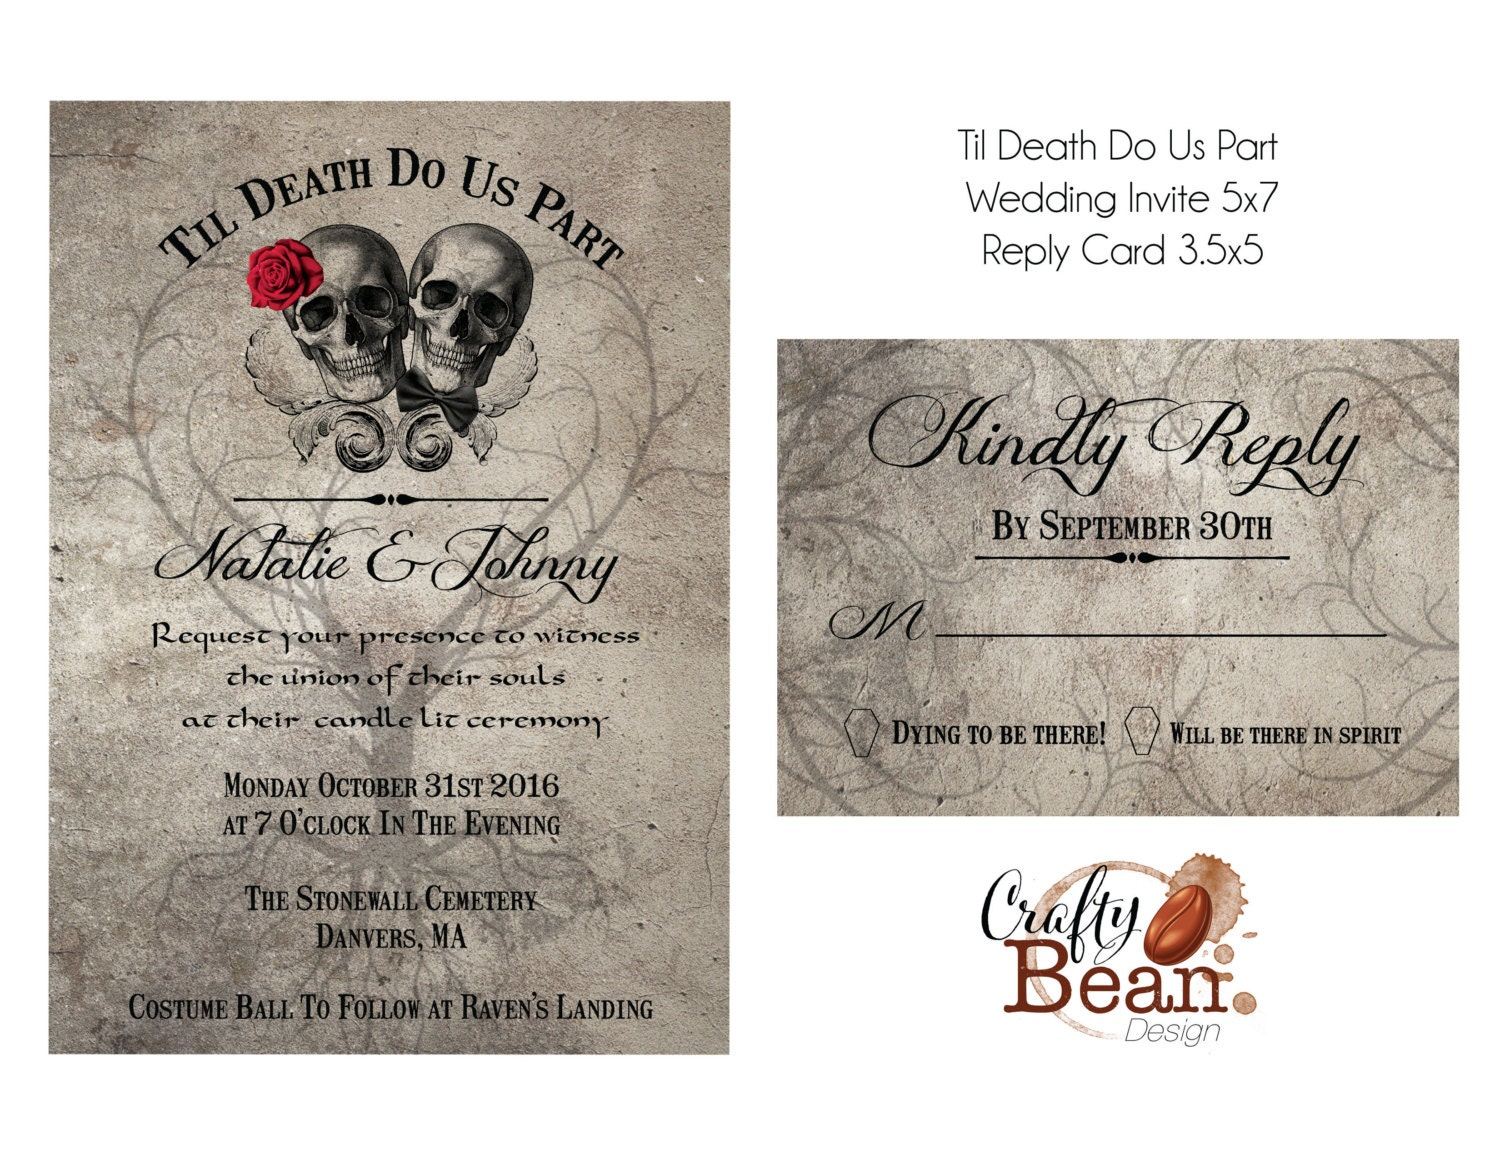 Parts Of Wedding Invitation: Til Death Do Us Part Wedding Invitation DIY Printable With